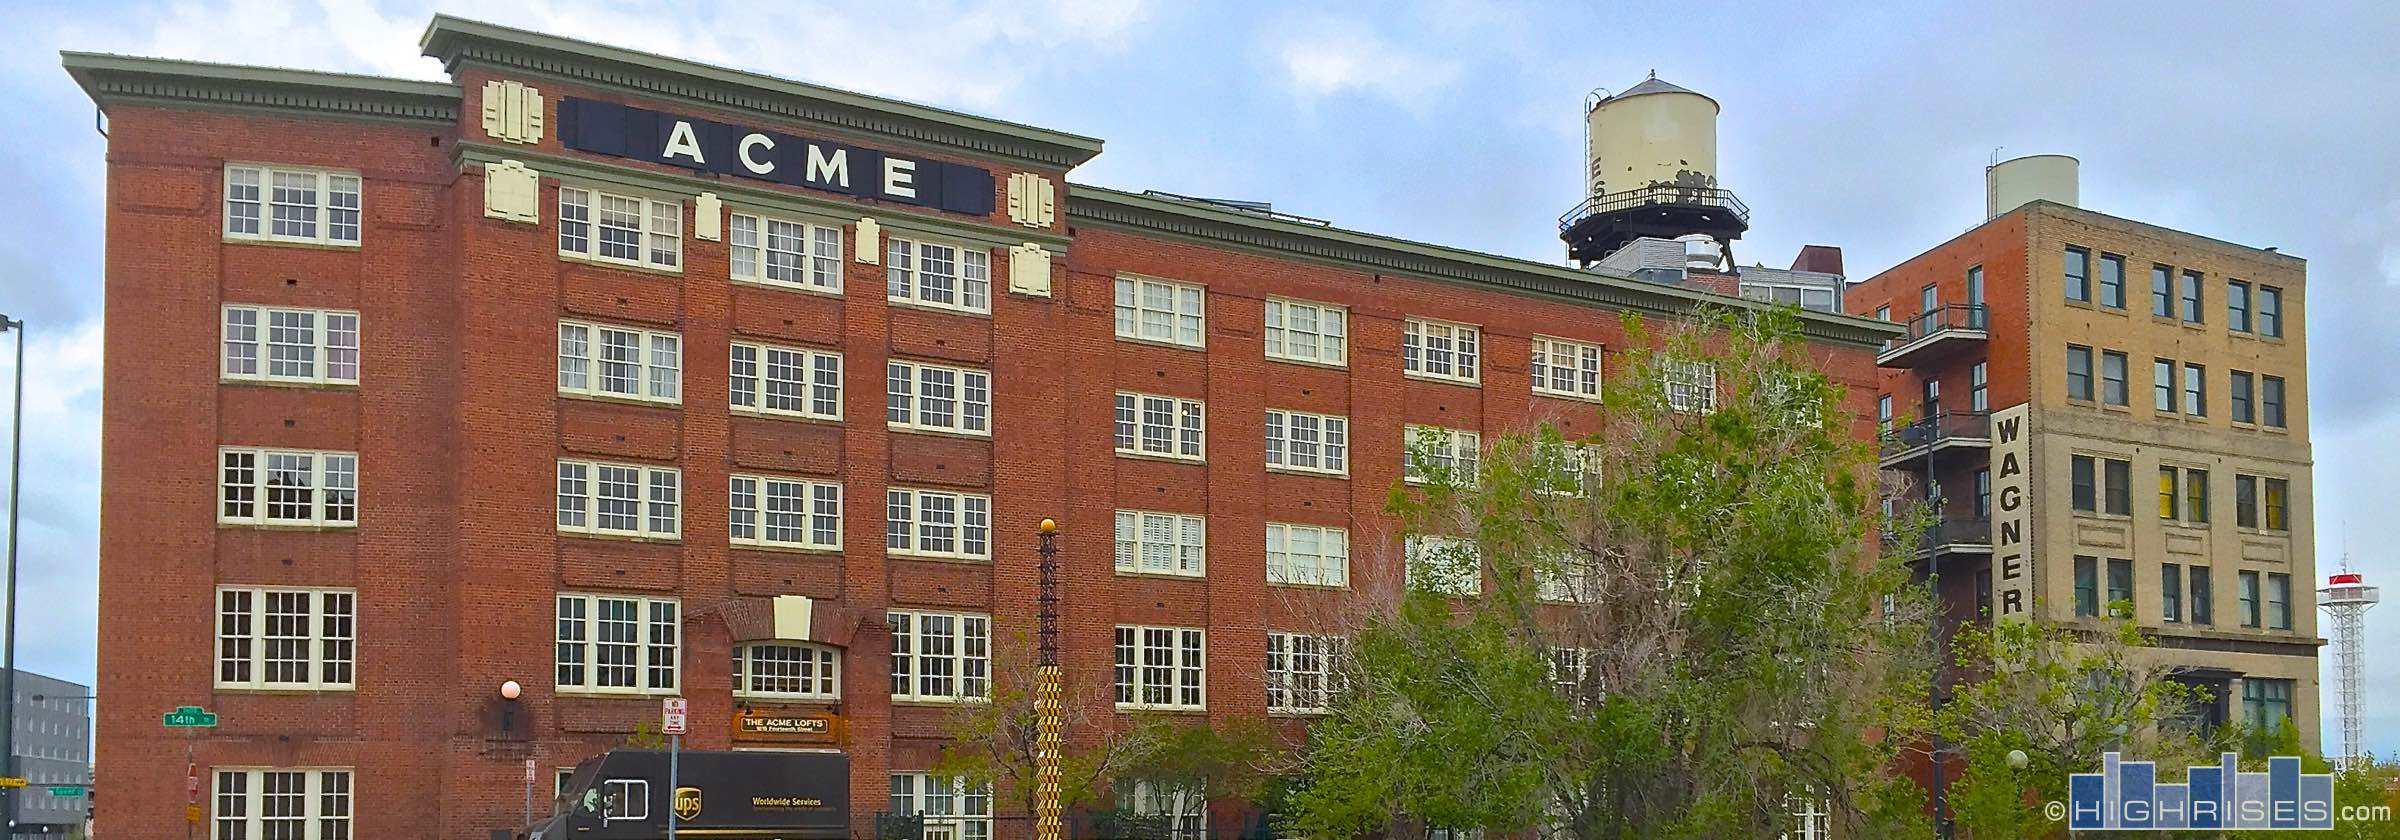 Acme Lofts